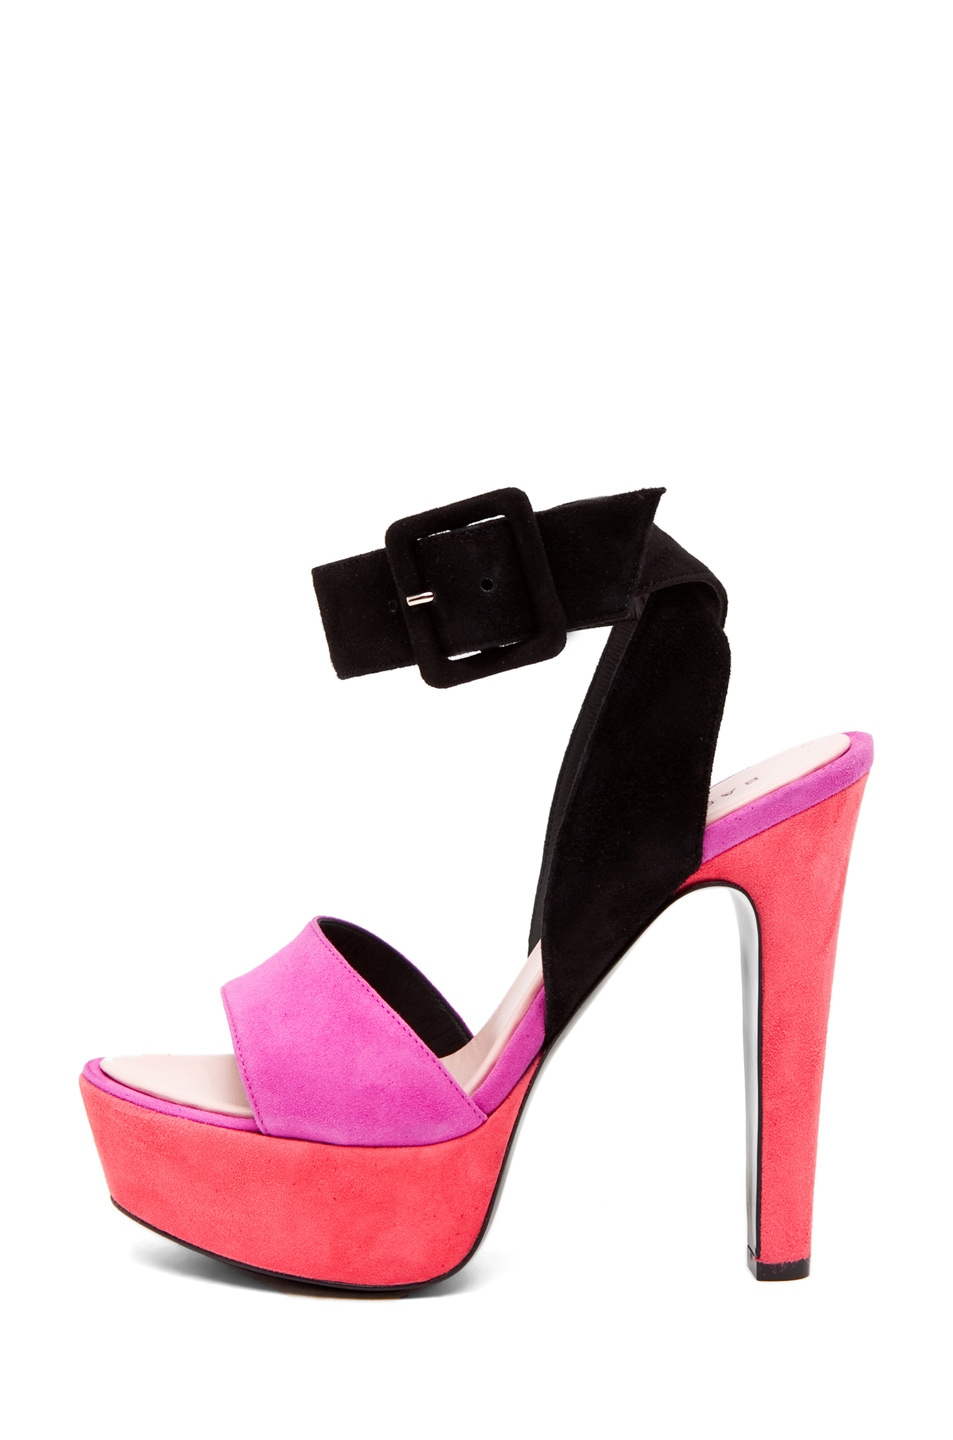 Image 1 of Barbara Bui Ankle Strap Heel in Pink/Black